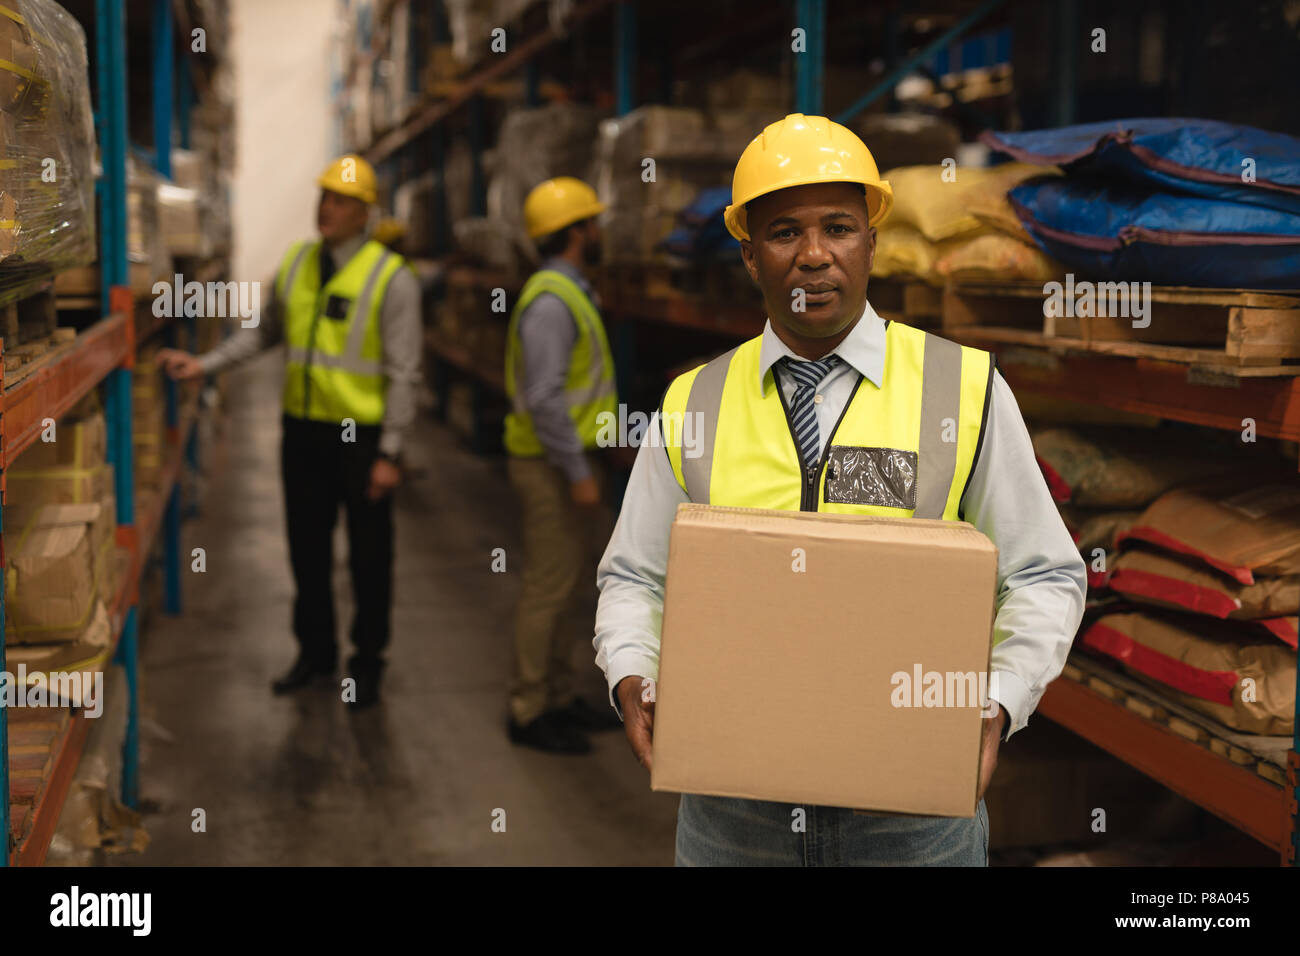 Le personnel masculin holding cardboard box in warehouse Photo Stock